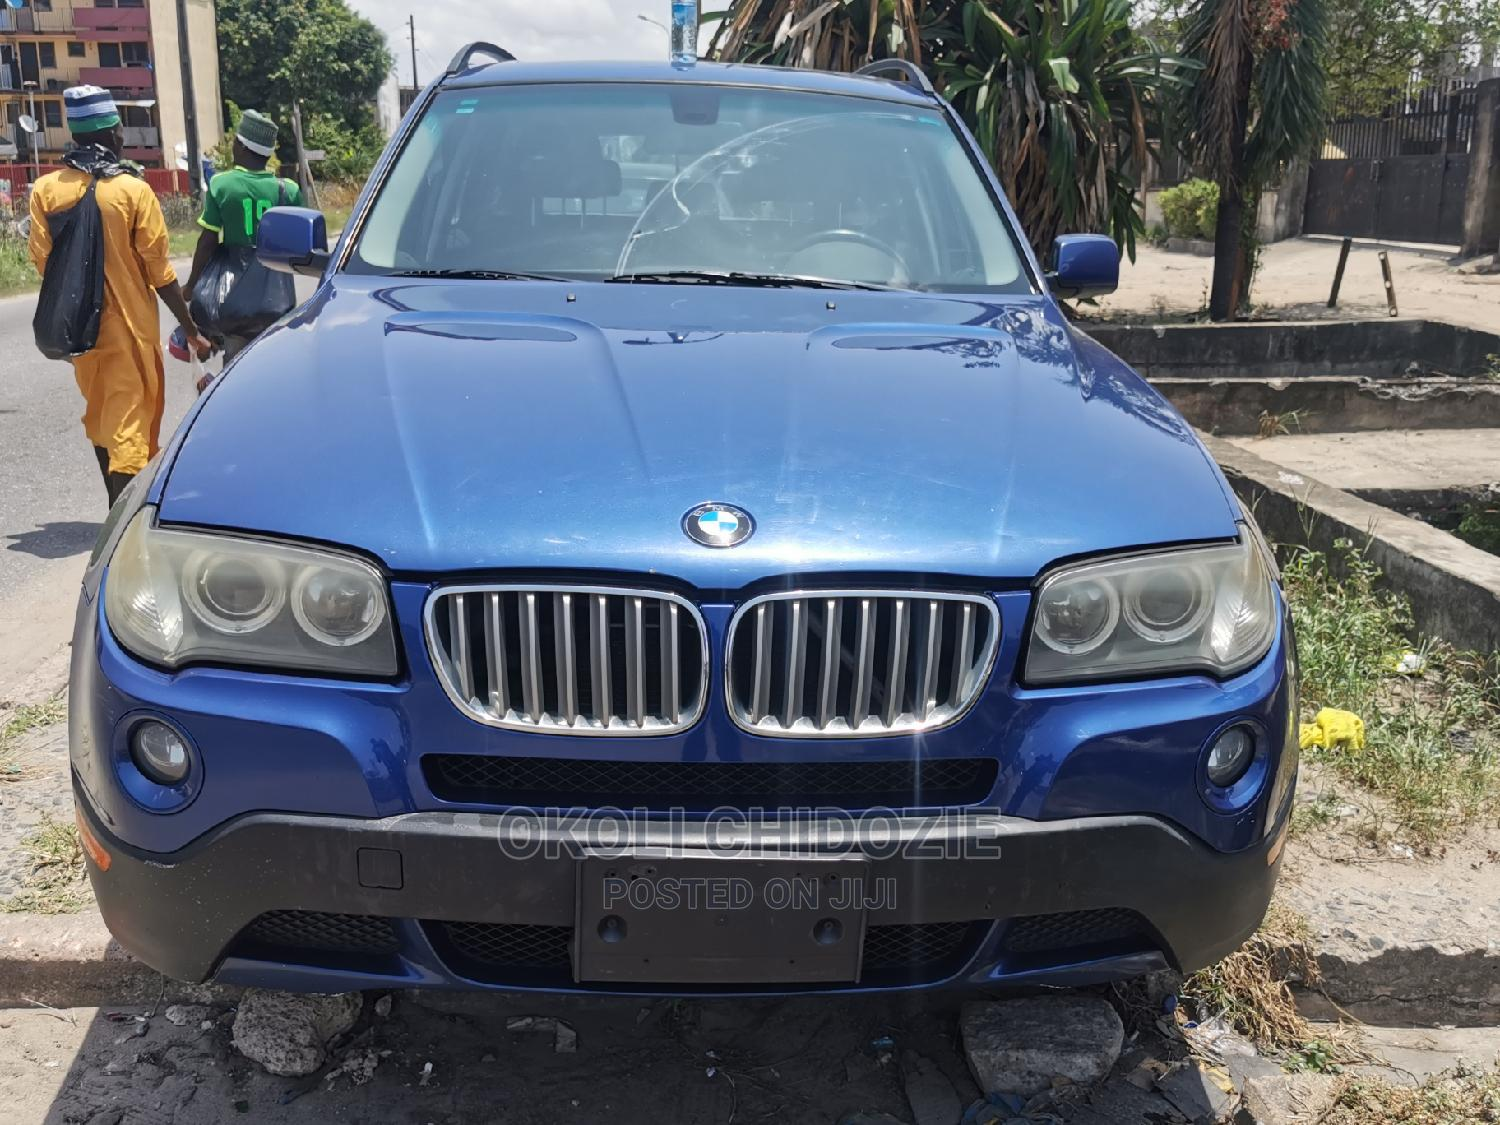 BMW X3 2007 3.0si Exclusive Automatic Blue